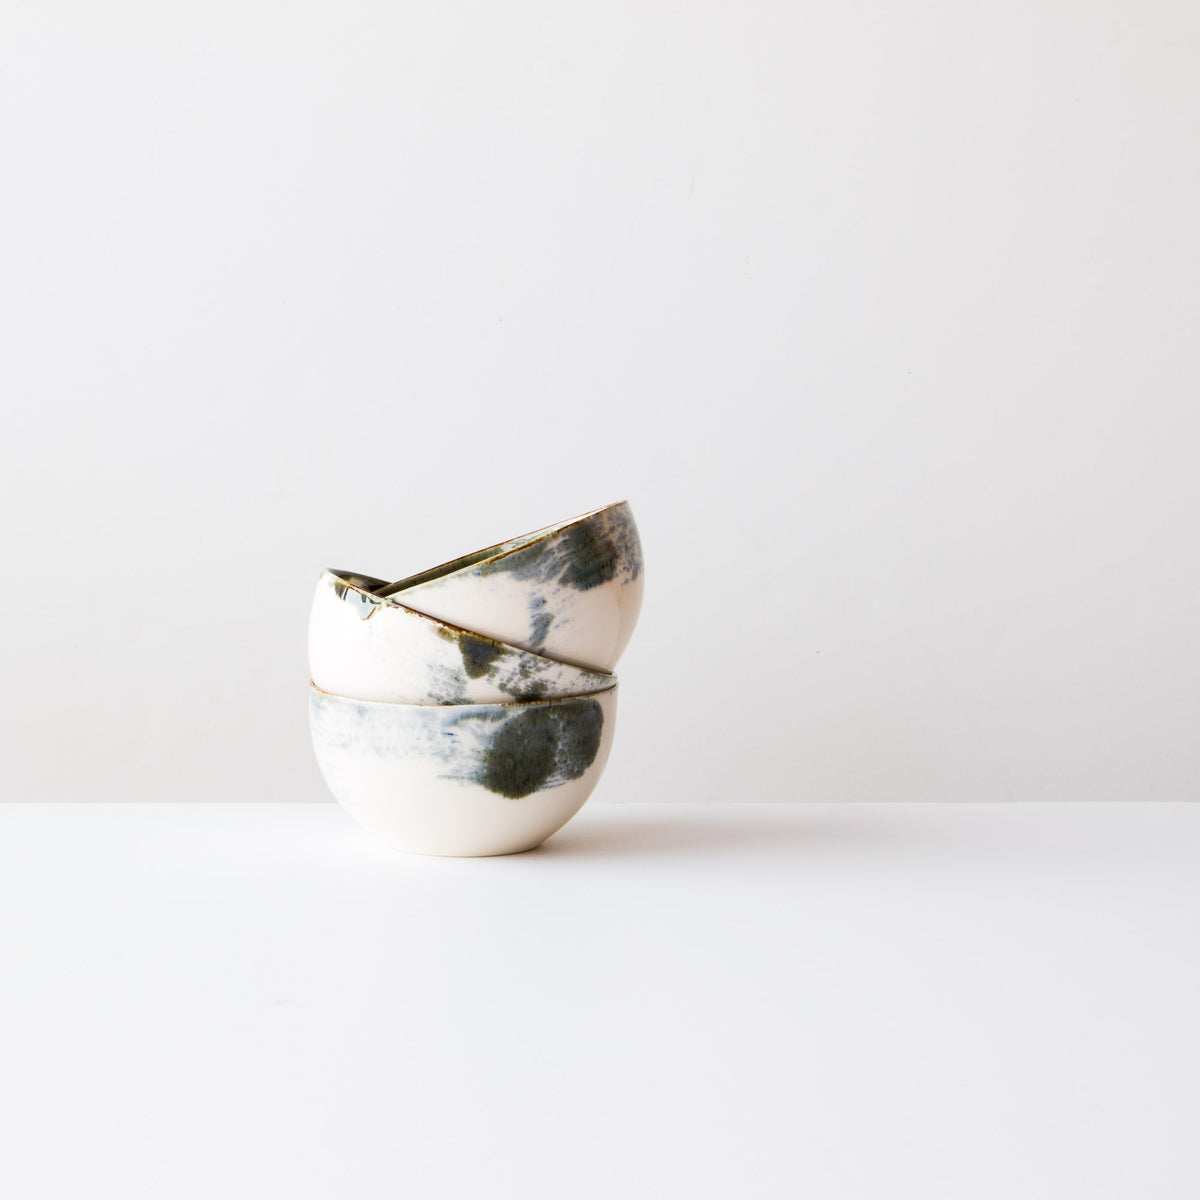 Handmade Porcelain Rice Bowls - White Painted Porcelain - Sold by Chic & Basta